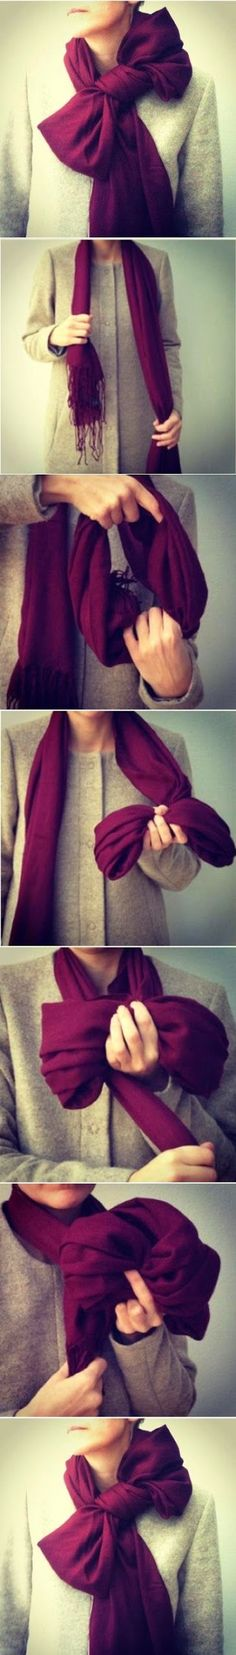 DIY : How to make scarf bow